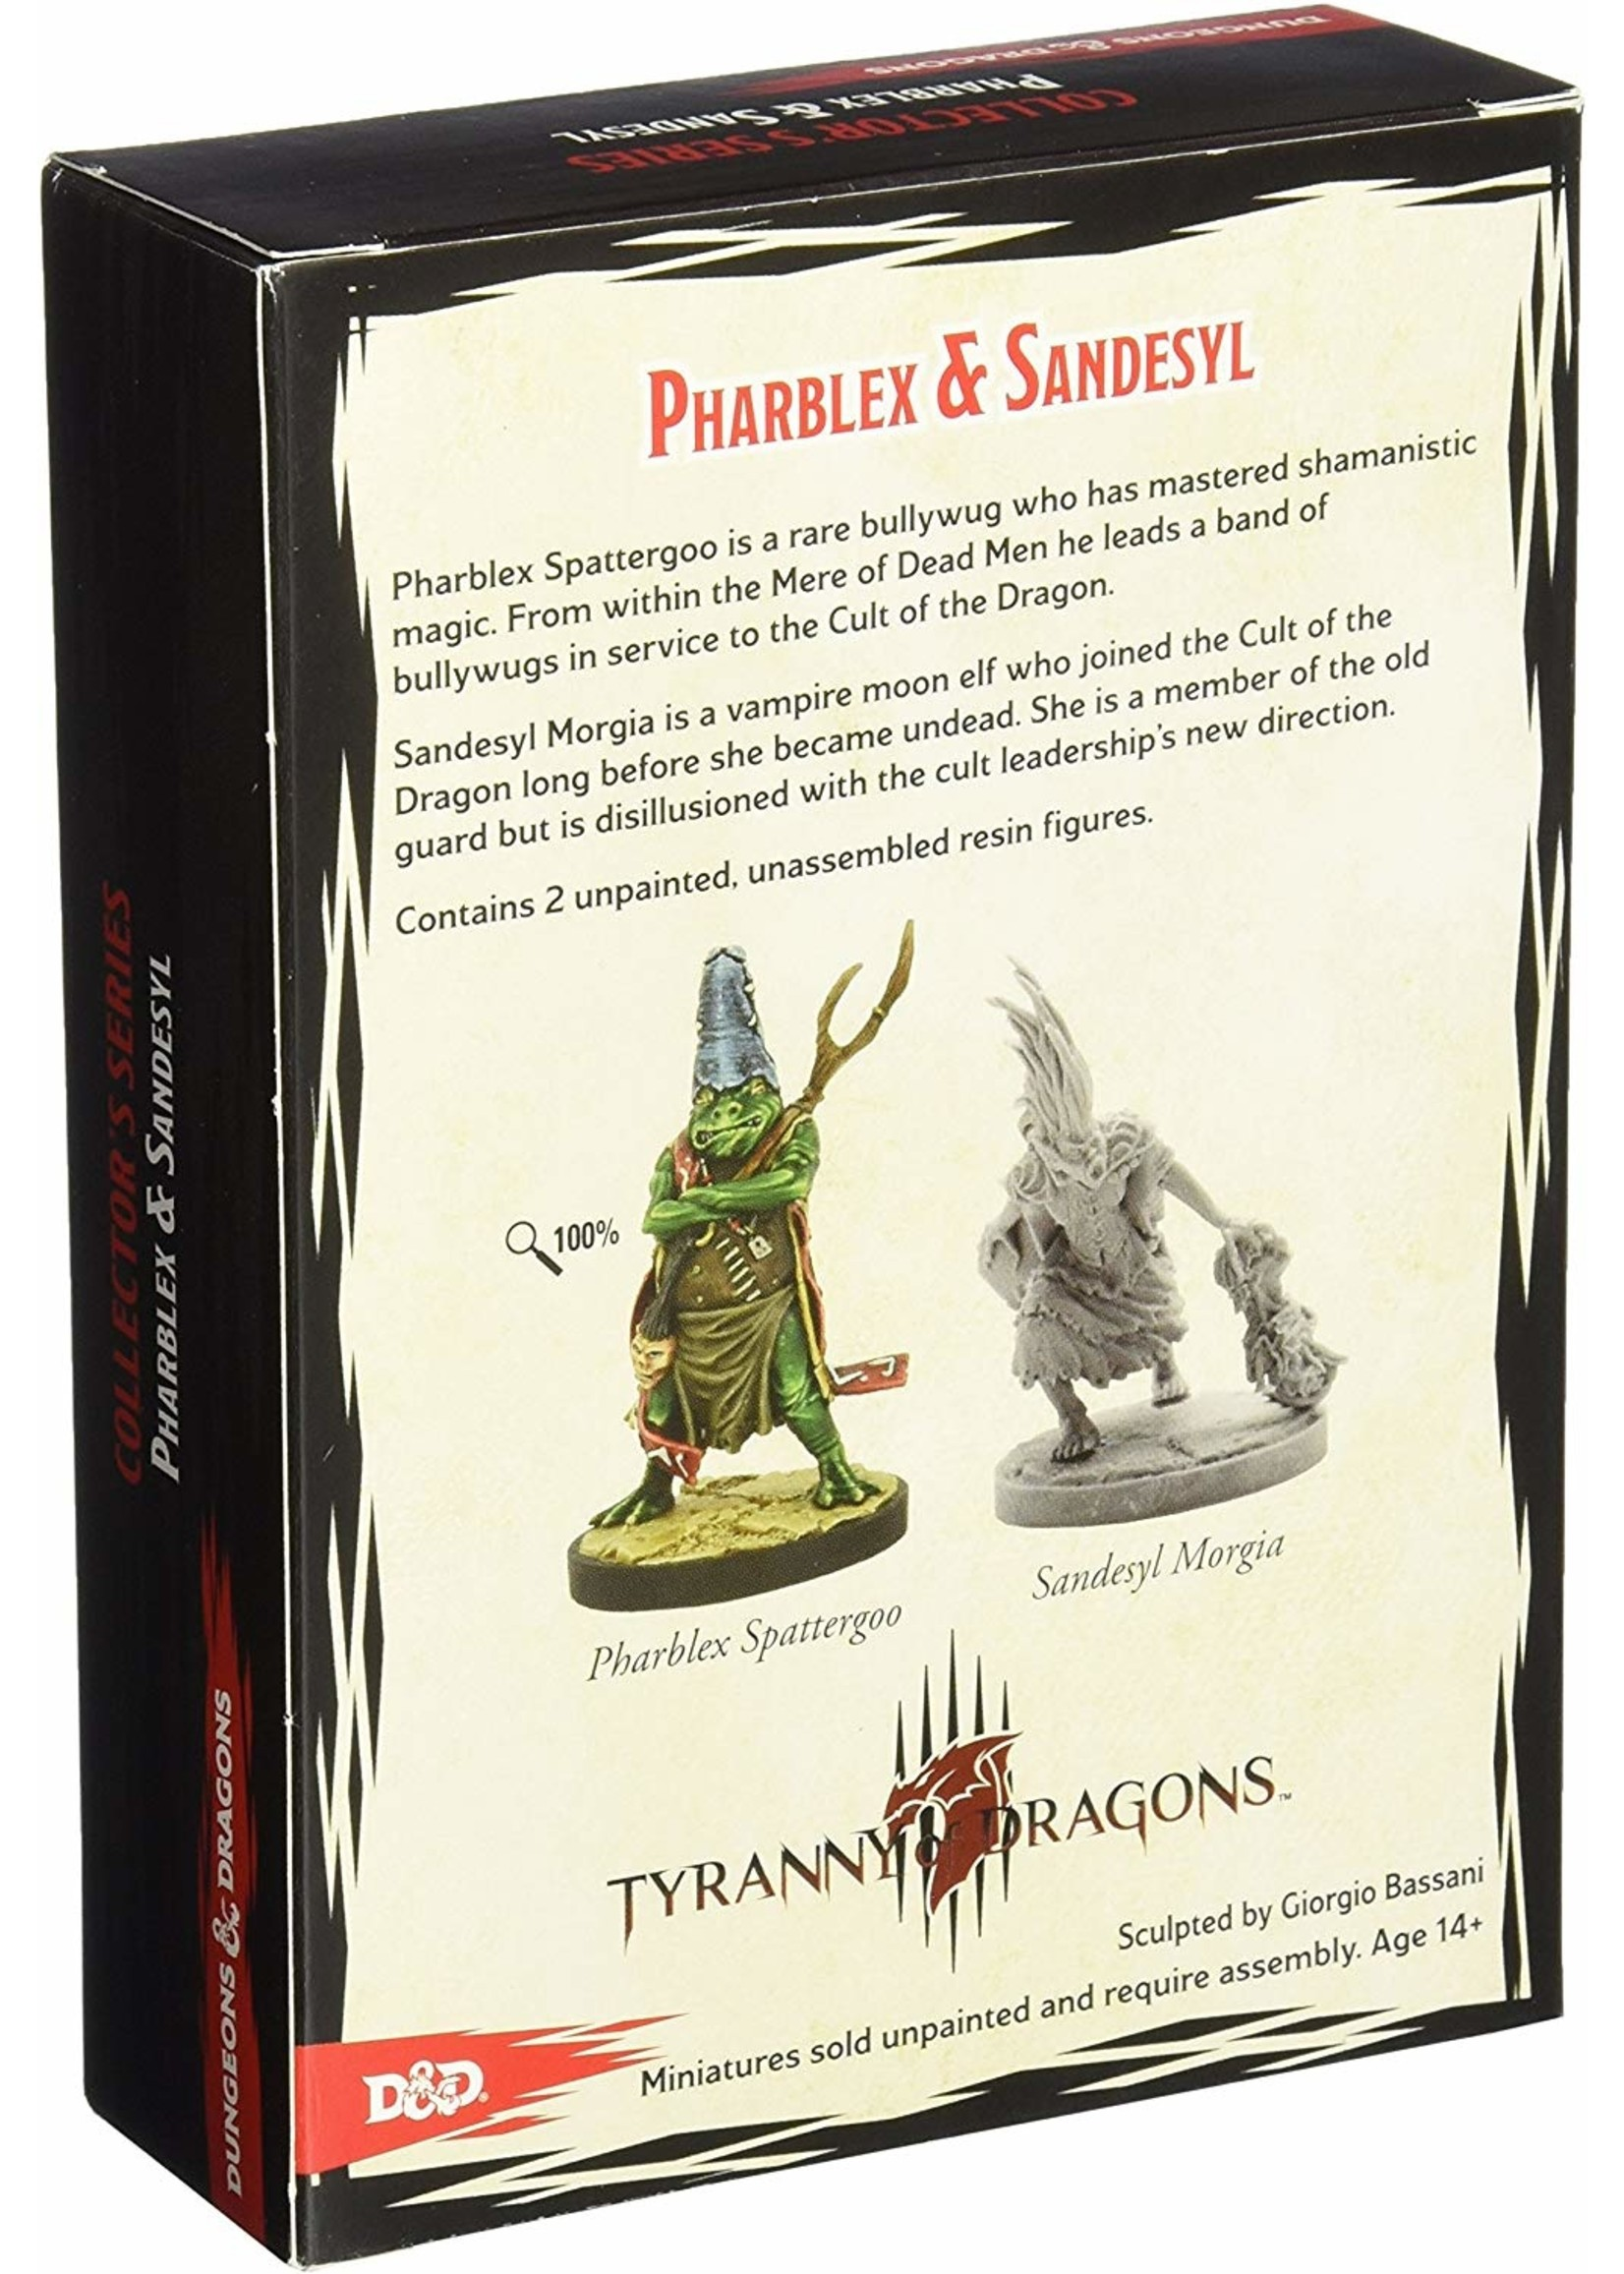 Dungeons and Dragons: Tyranny of the Dragons  - Sandesyl and Pharblexx